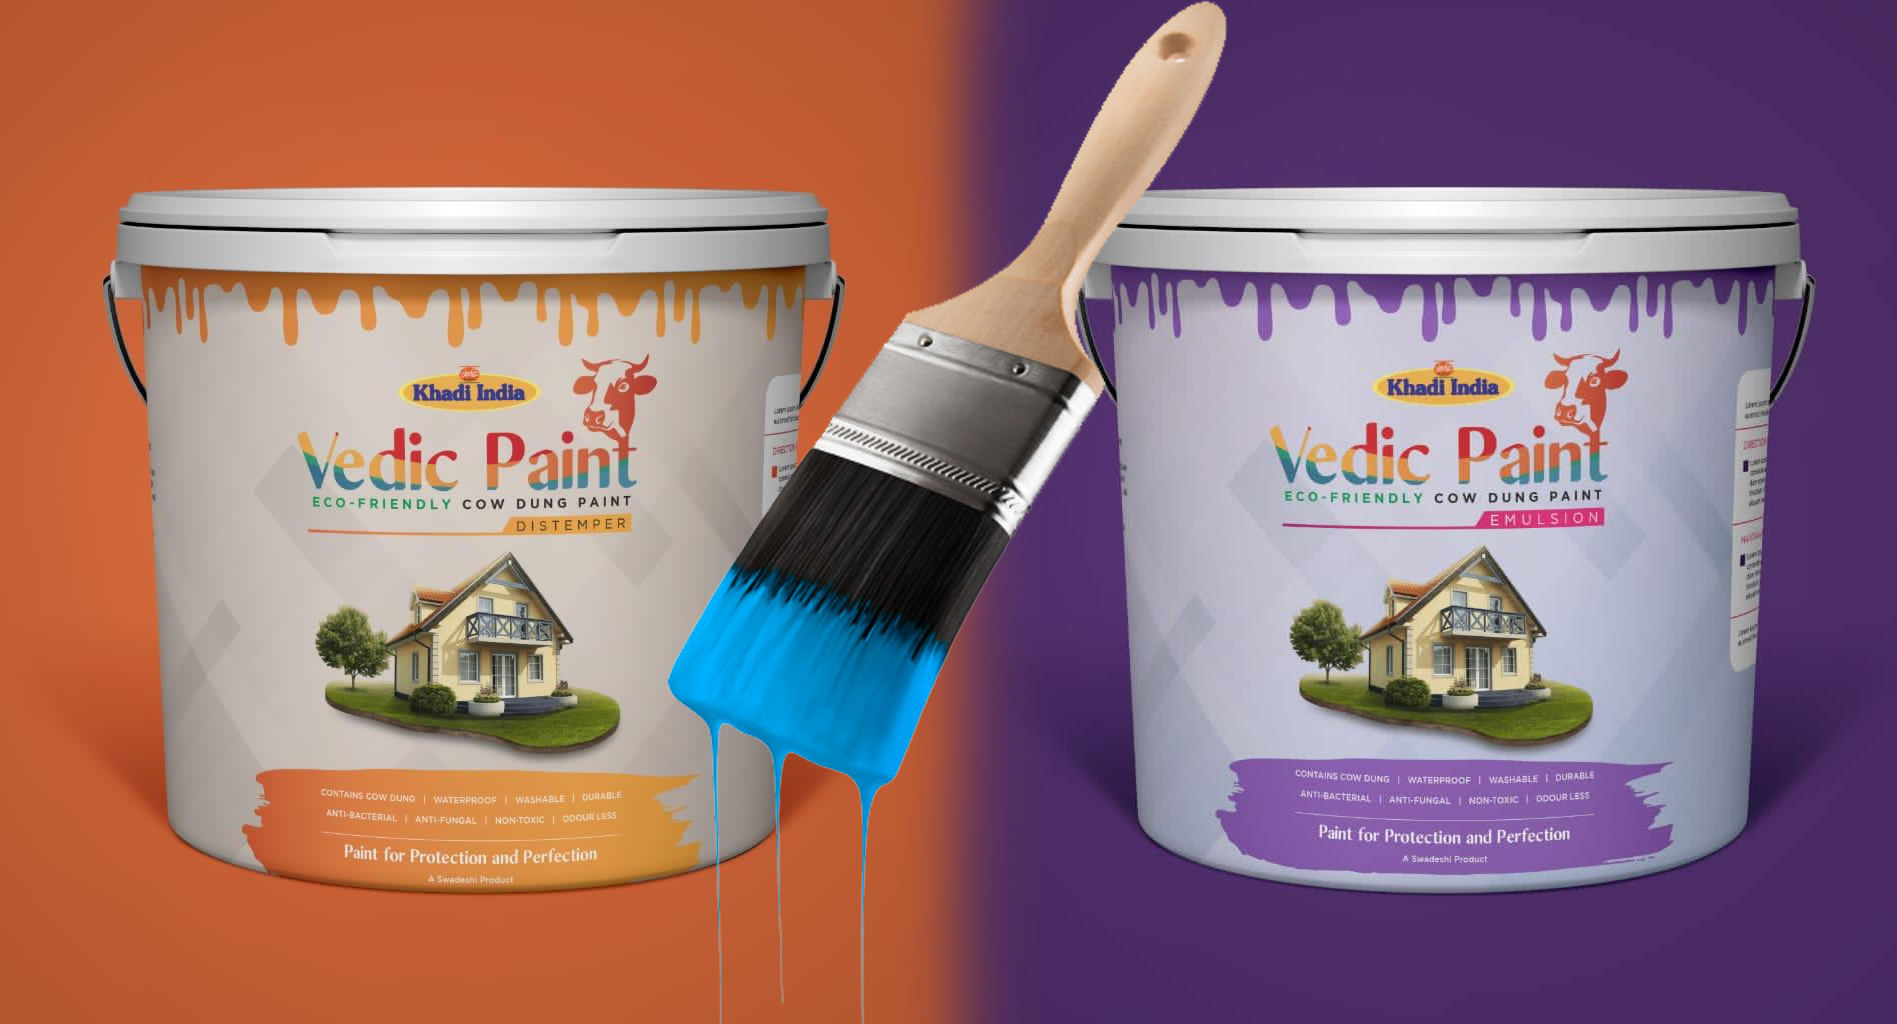 Cow And Uses - Indian Makes Paint Using Cow Dung - Calls Vedic Paint